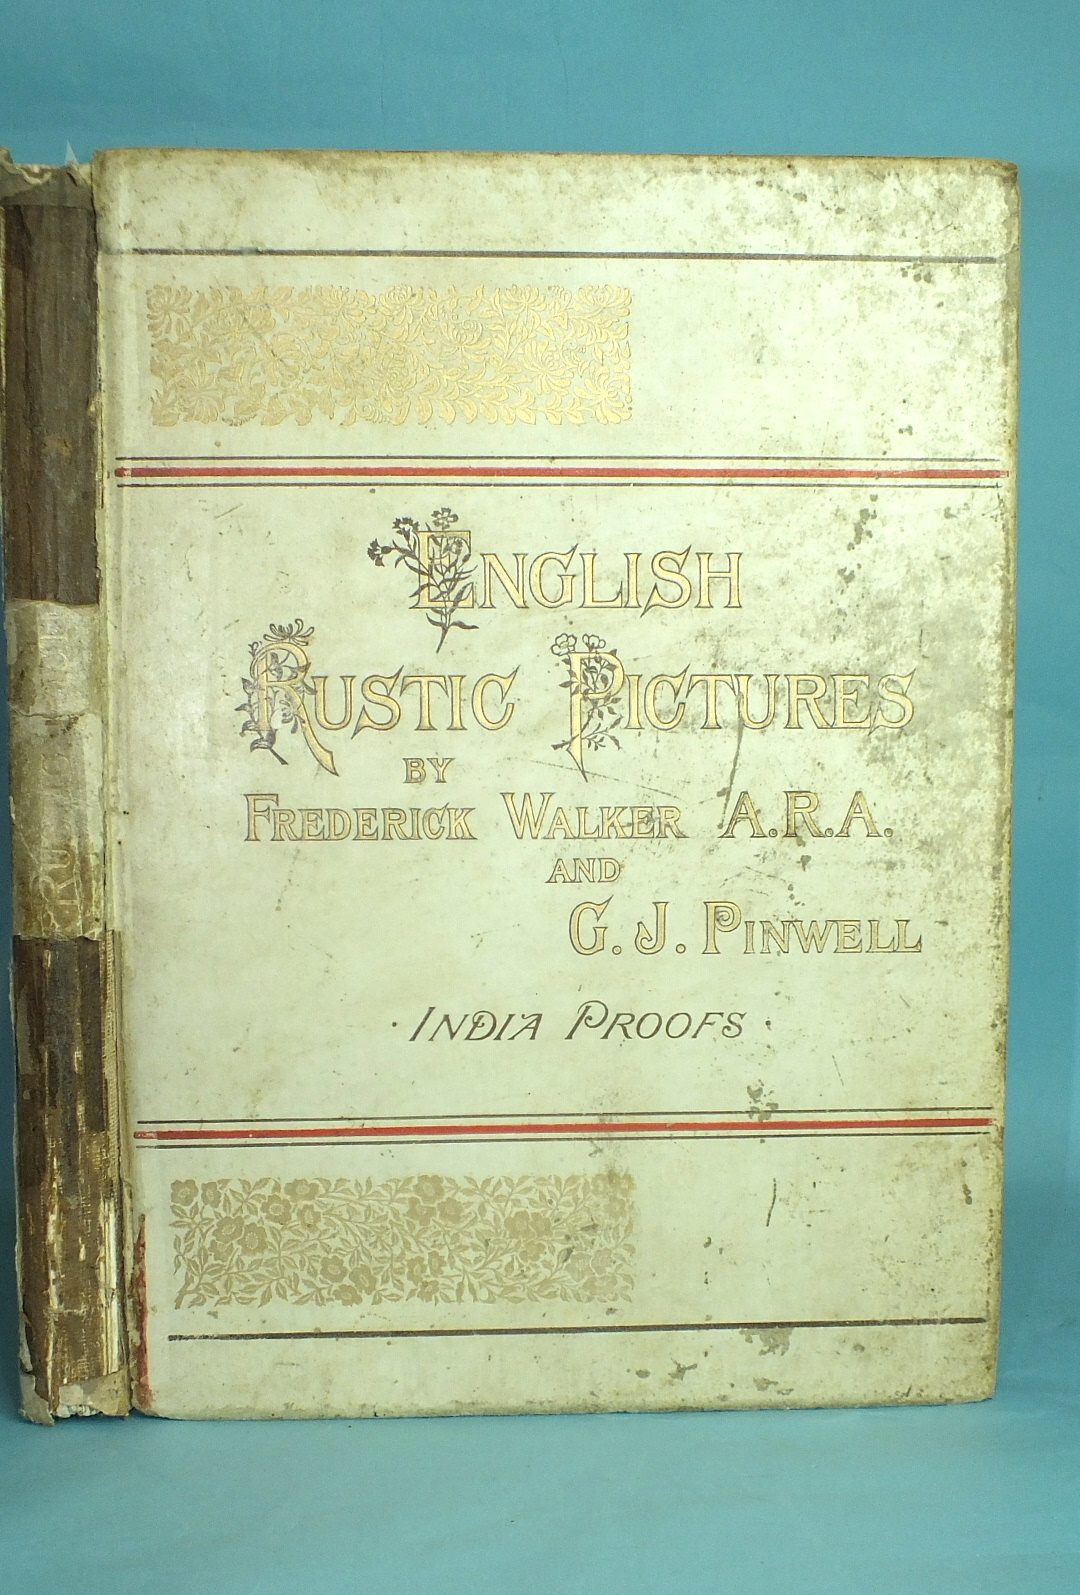 Walker (Frederick) and Pinwell (G J), English Rustic Pictures, no.160 of India Proof ltd edn of 300,